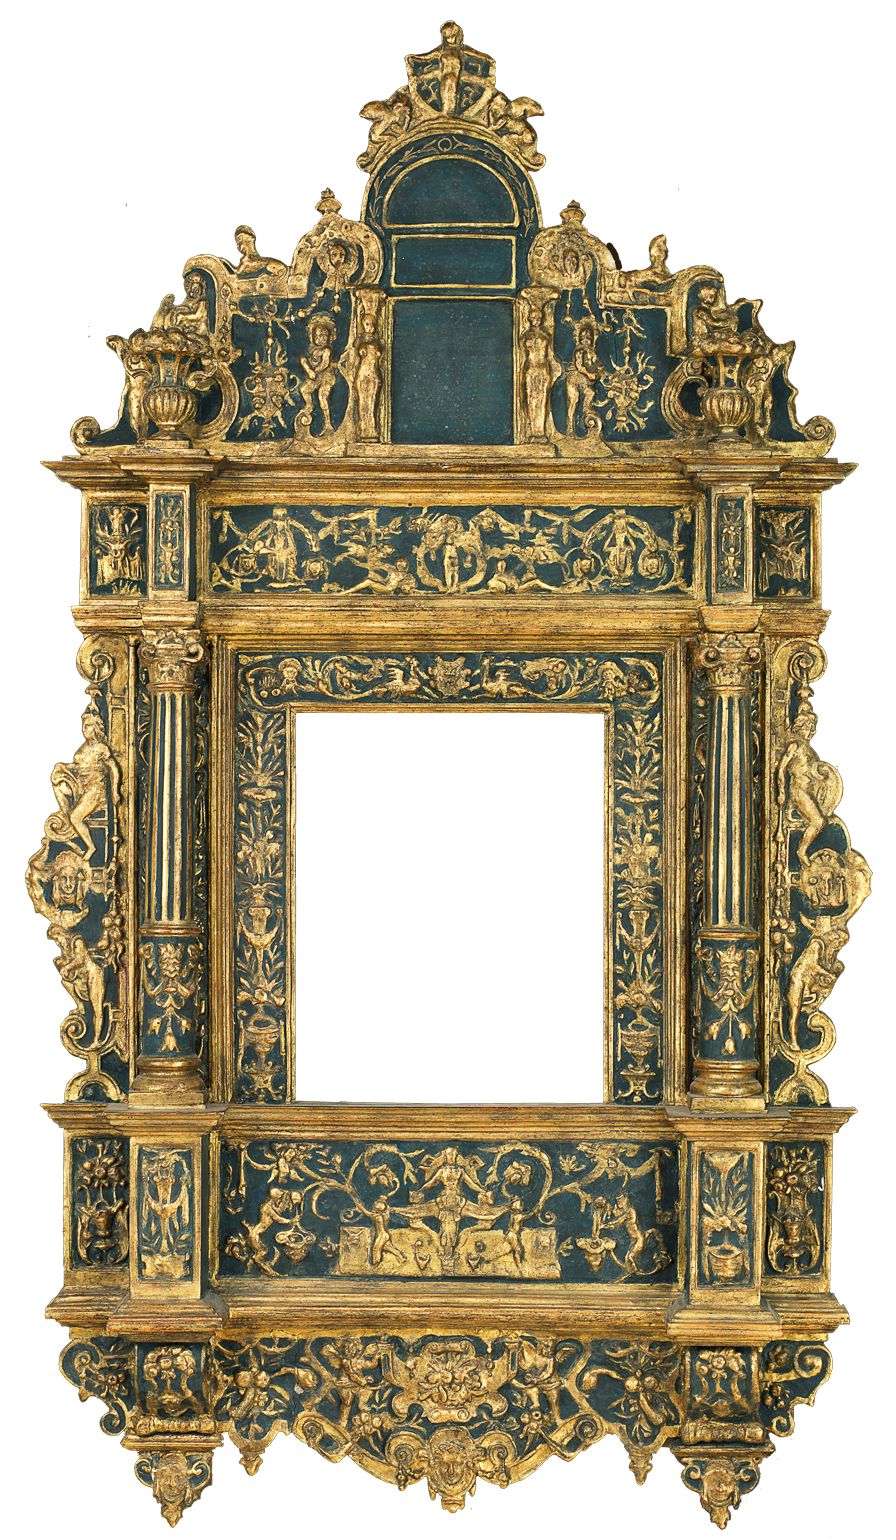 15th c. Italian Tabernacle